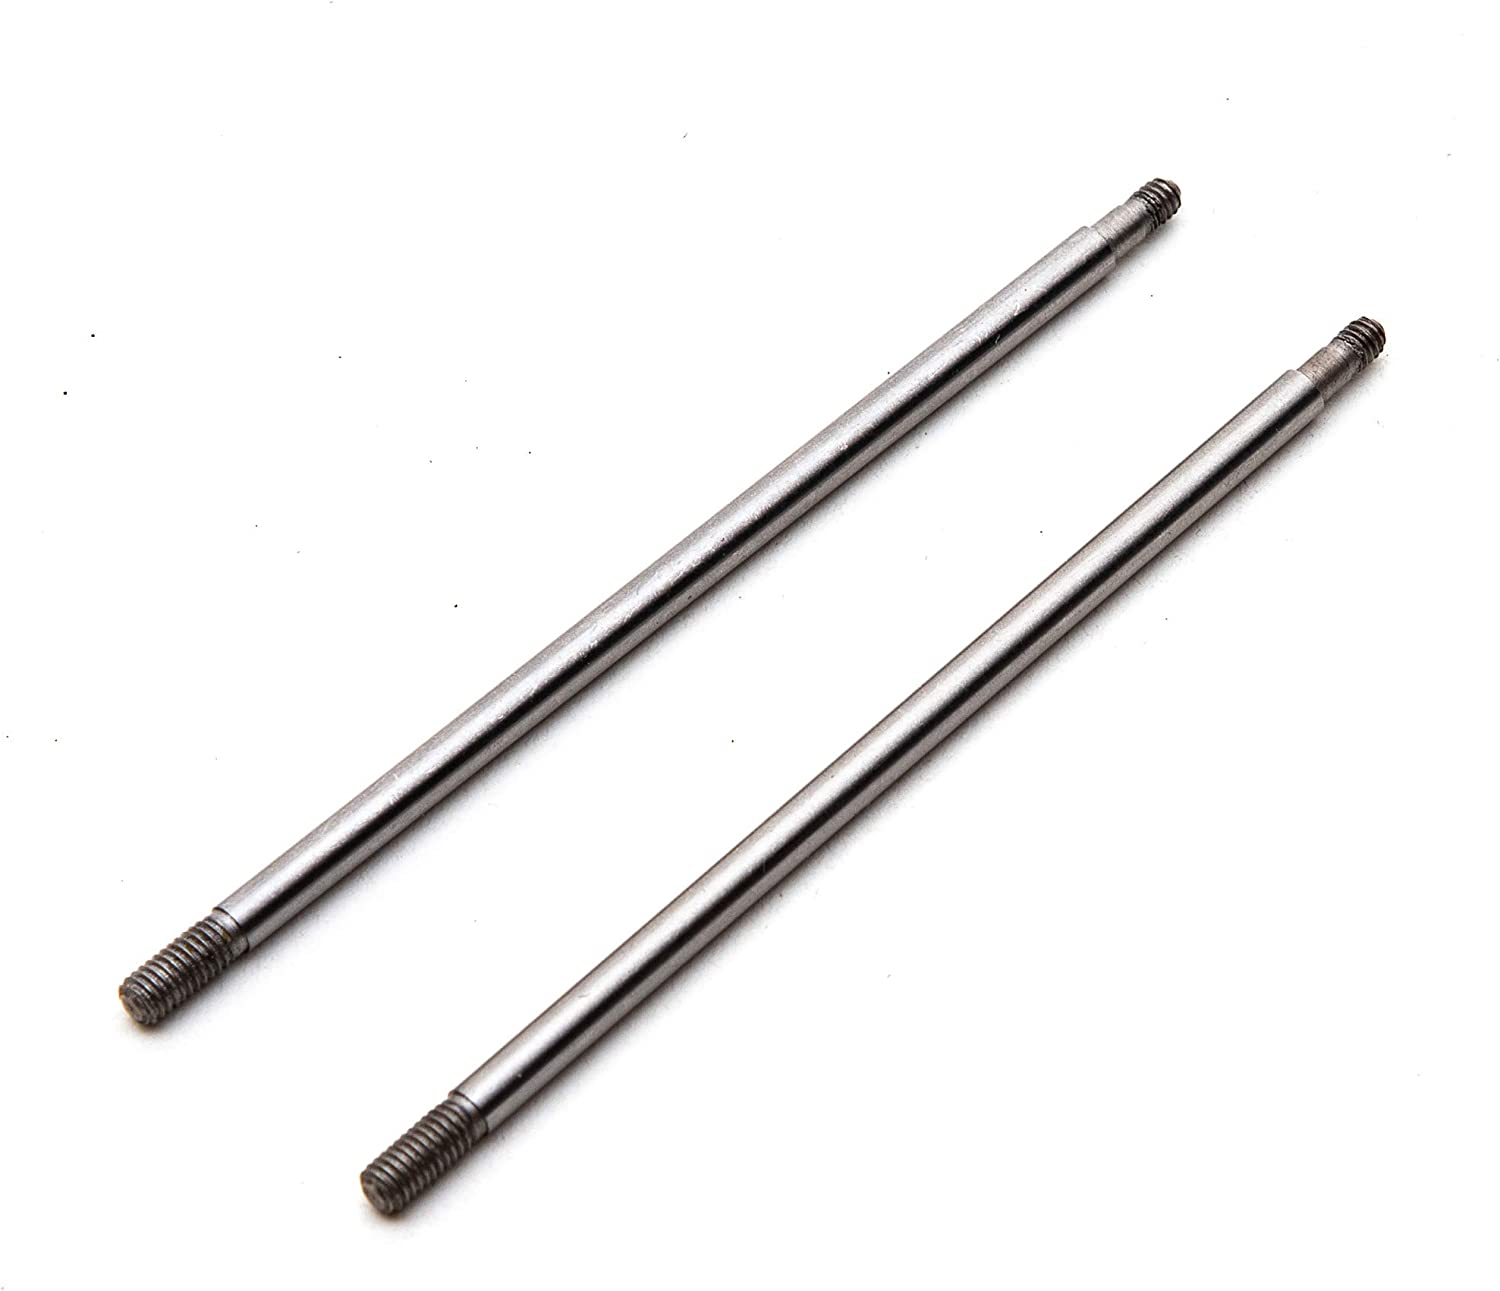 Axial Shock All stores are sold Shaft 77.7mm RBX10 Max 58% OFF 2 AXI233026